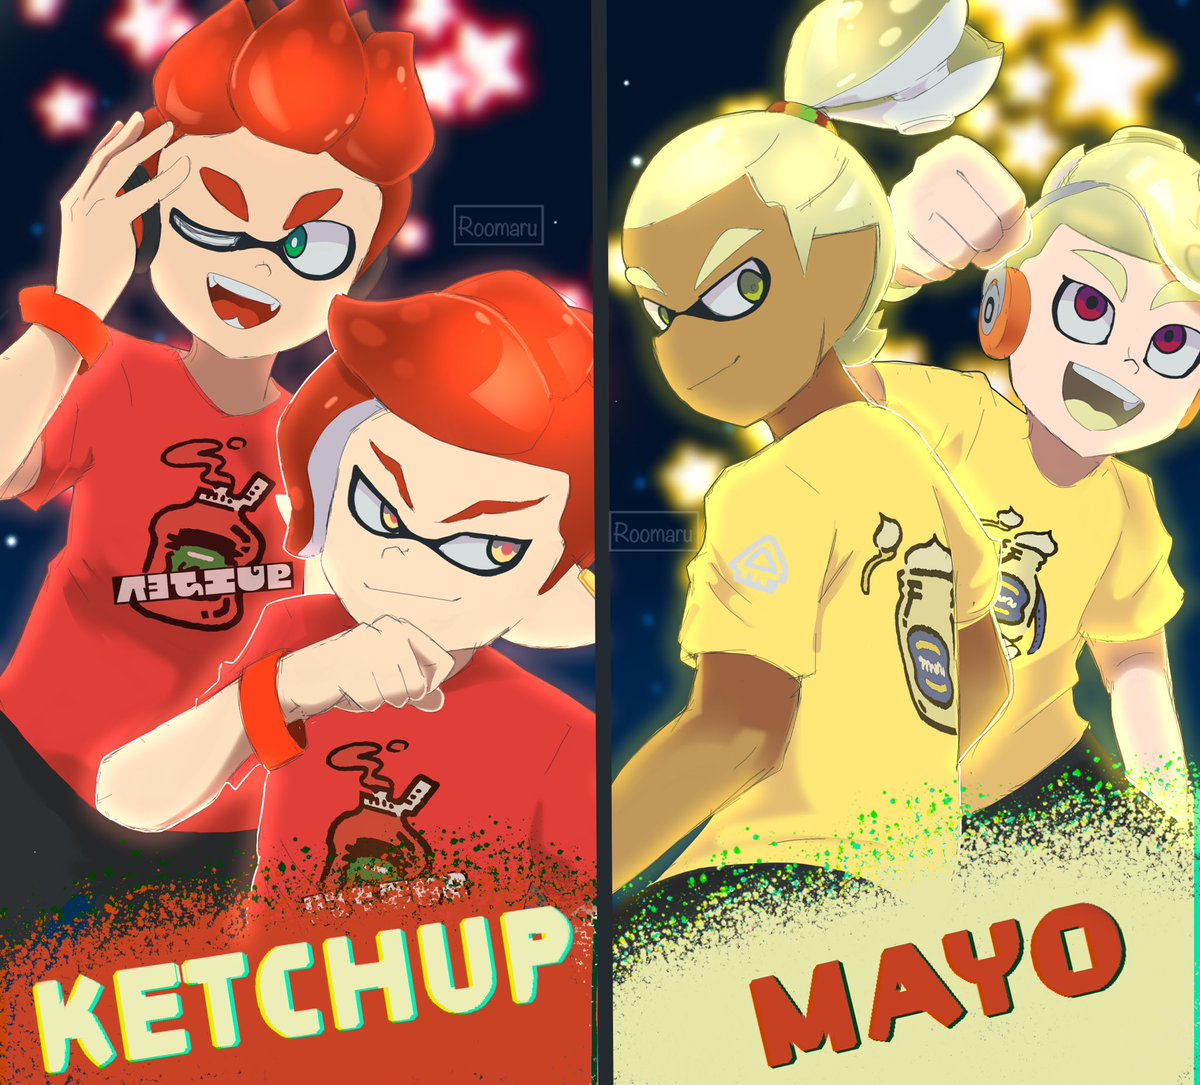 Mayernase or keptsup  Now with some of my favorite mango boys   #splatfest #splatoonmanga #splatoon<br>http://pic.twitter.com/Q9h8jhkduB